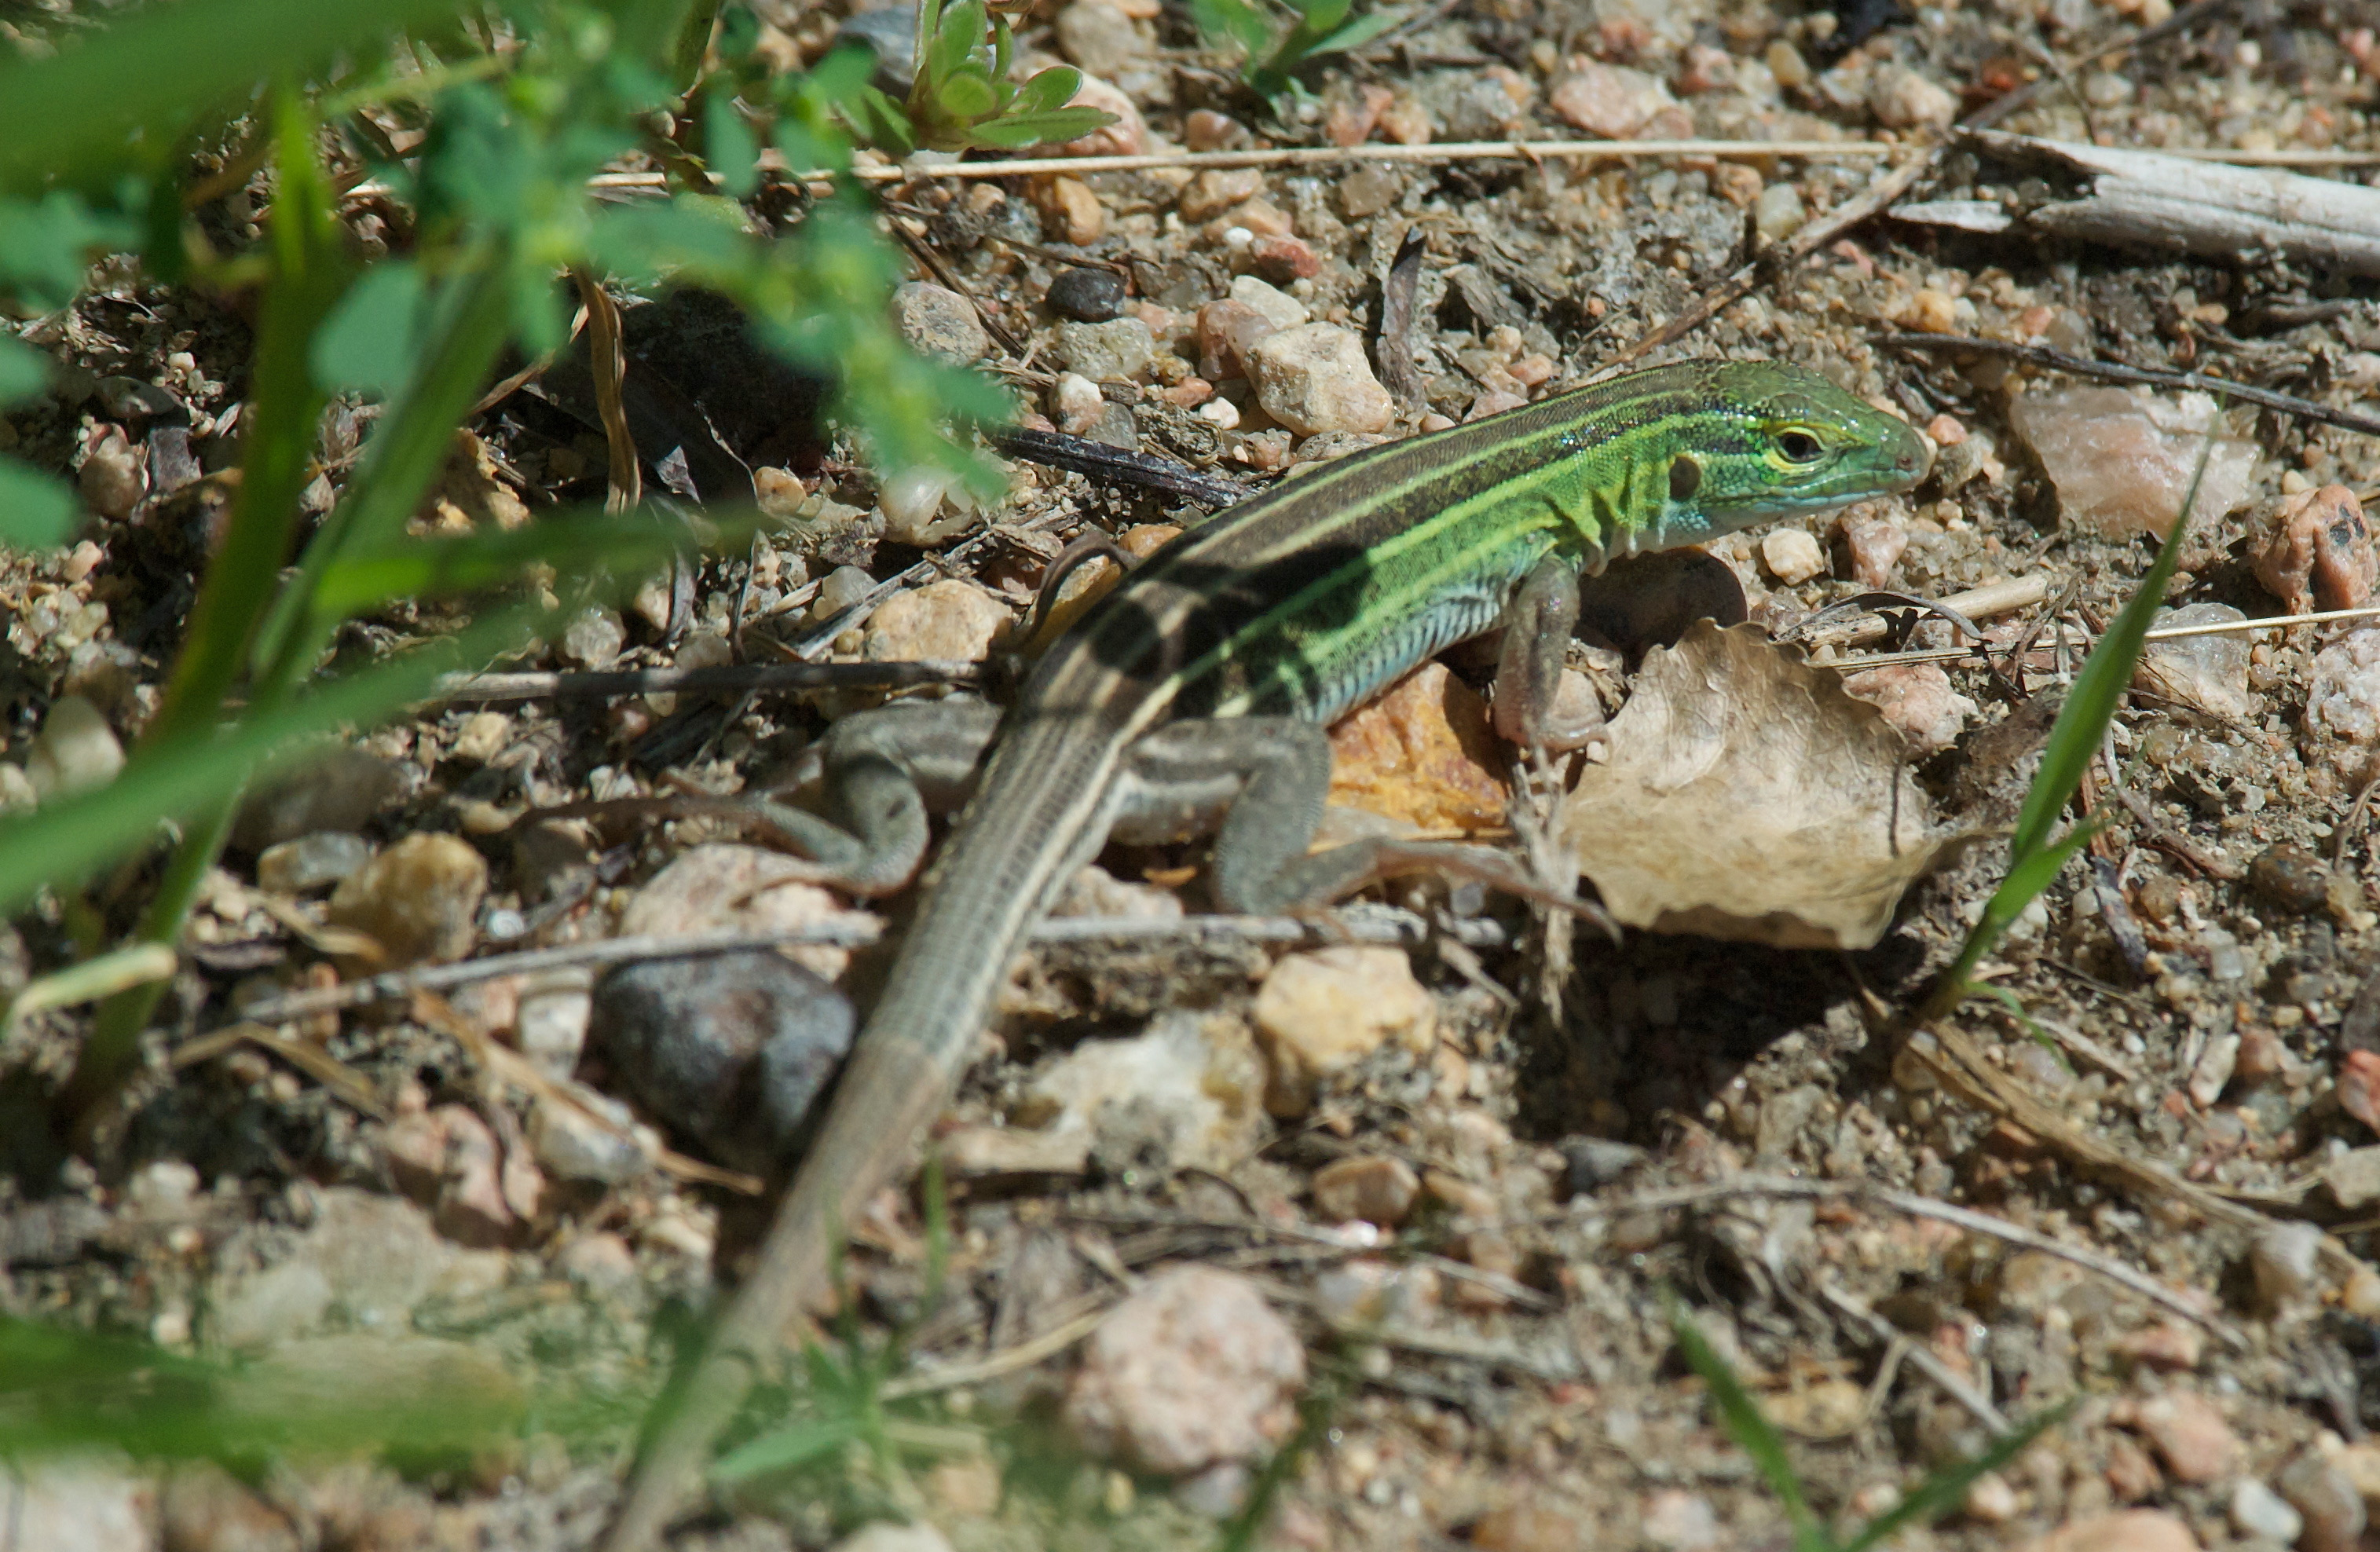 Six-Lined Racerunner Lizard